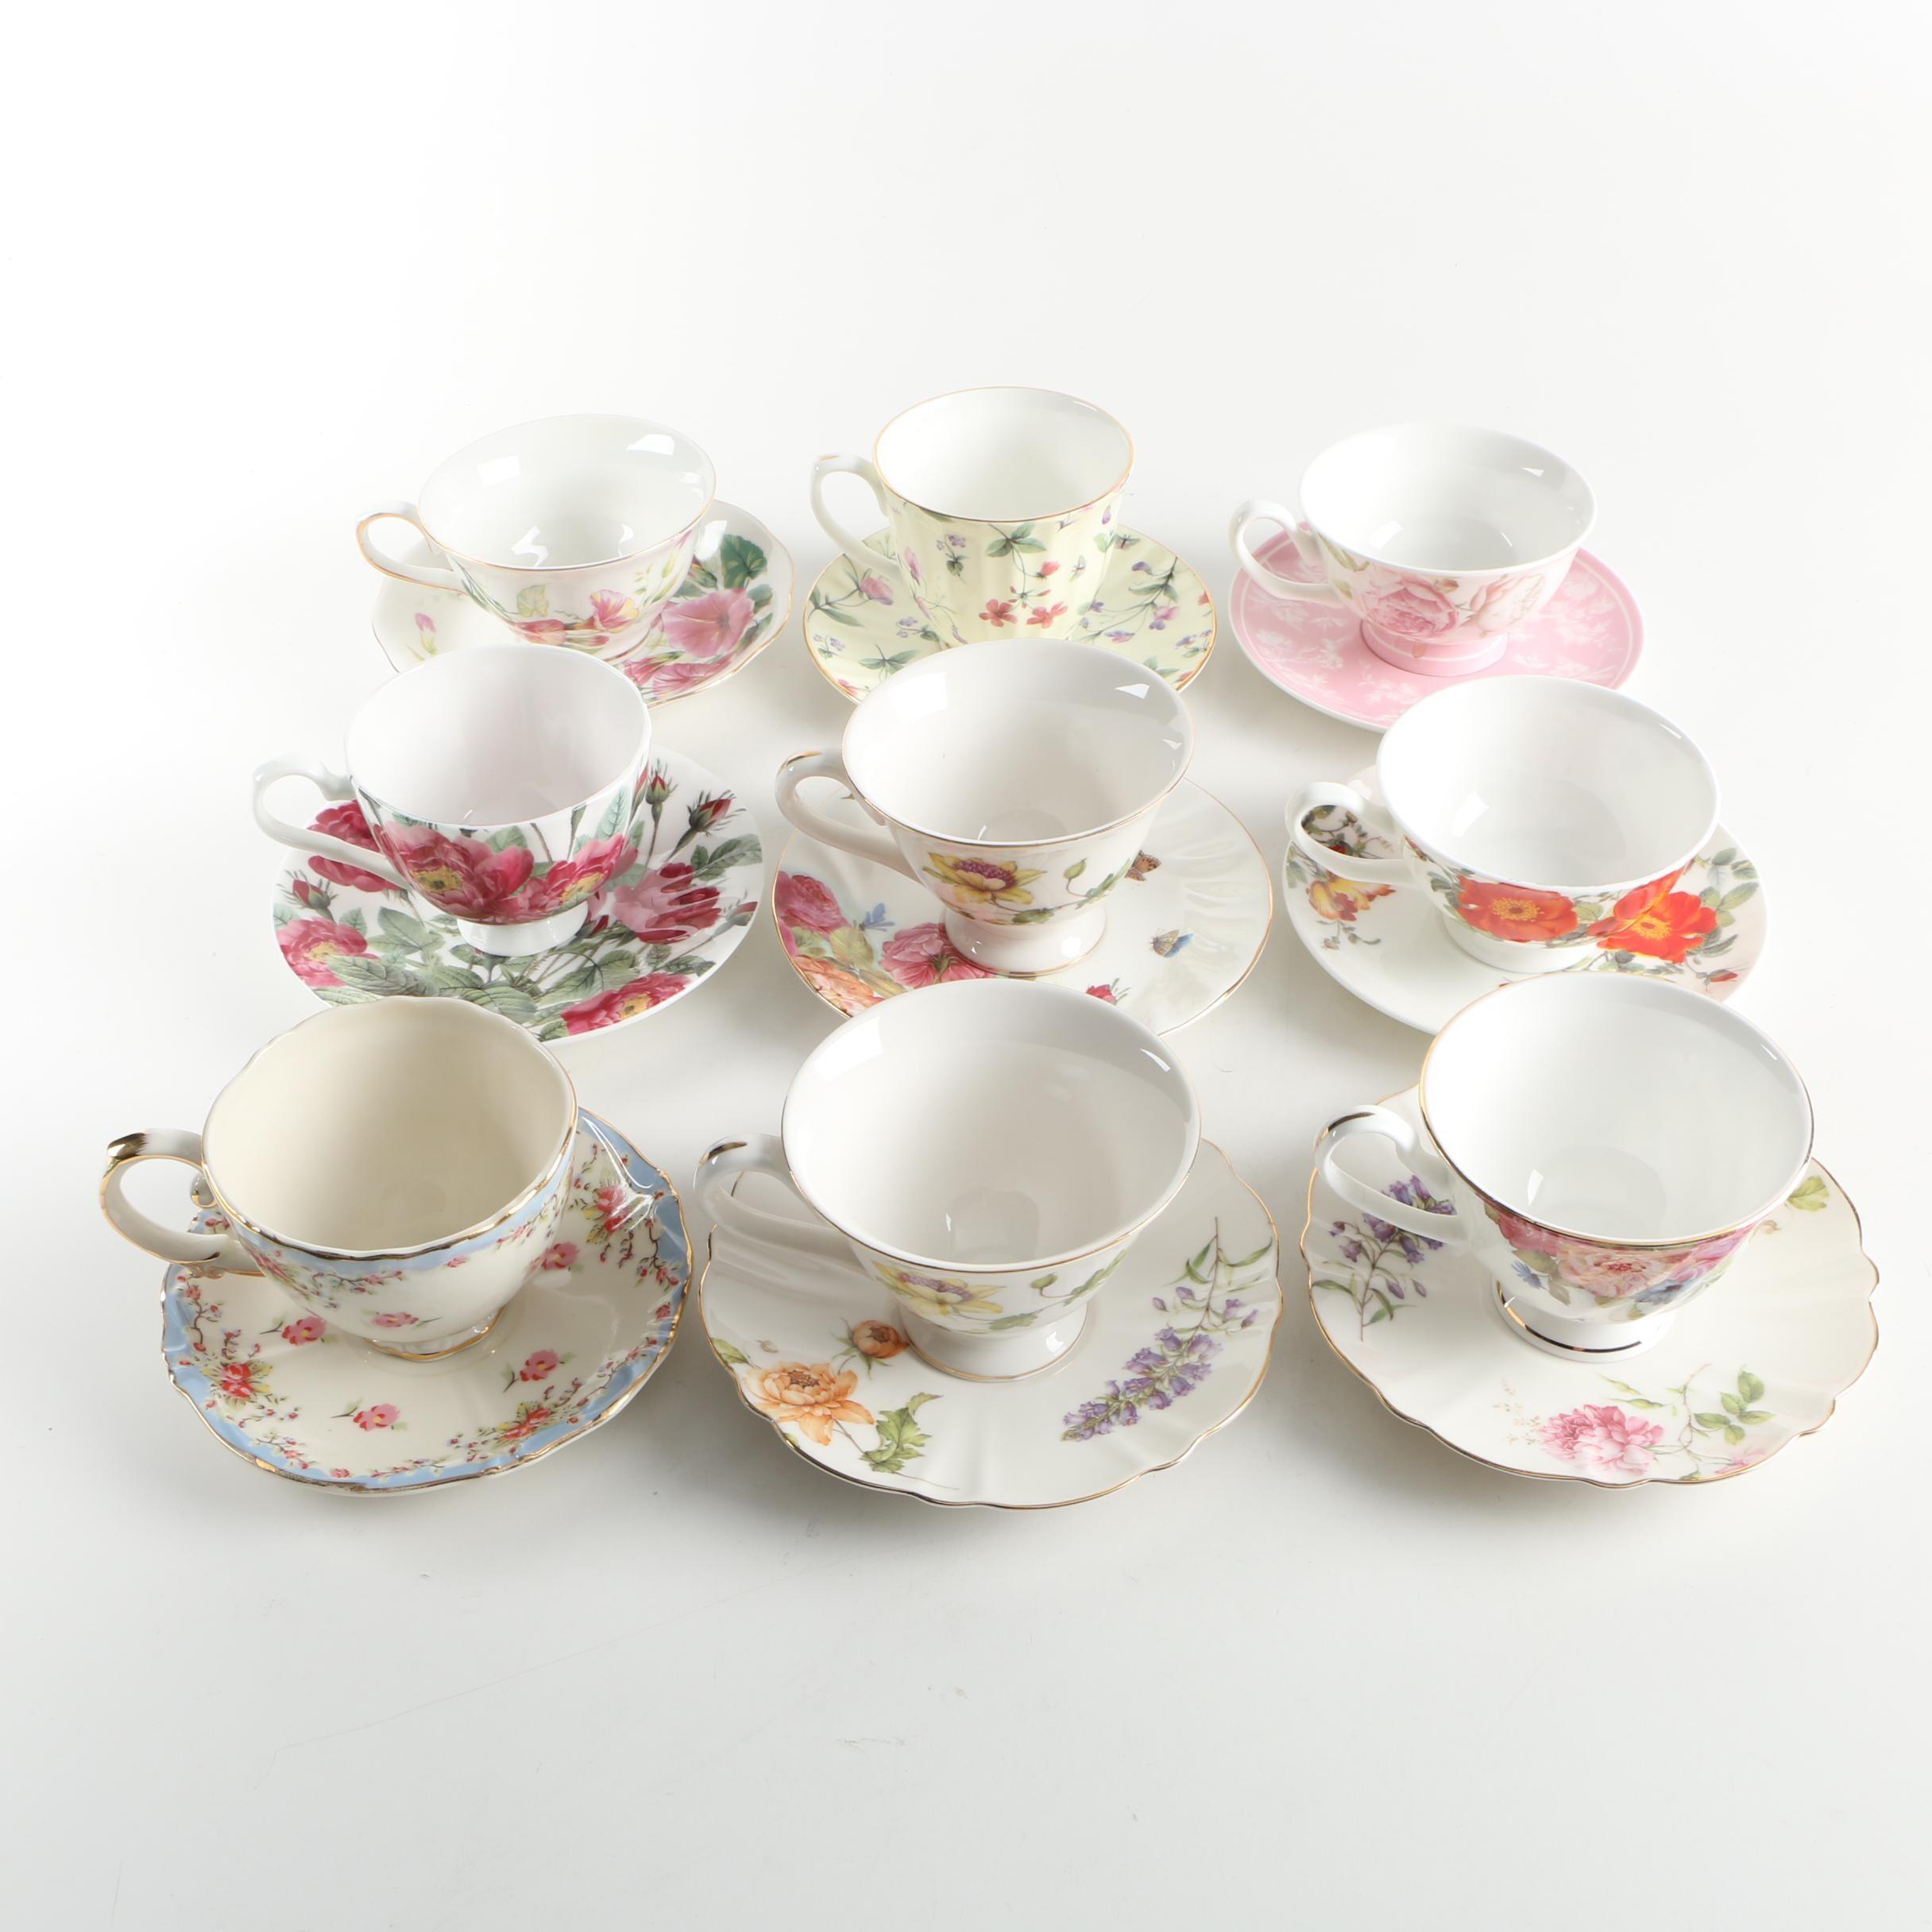 China Floral Teacups and Saucers including Grace Tea Ware